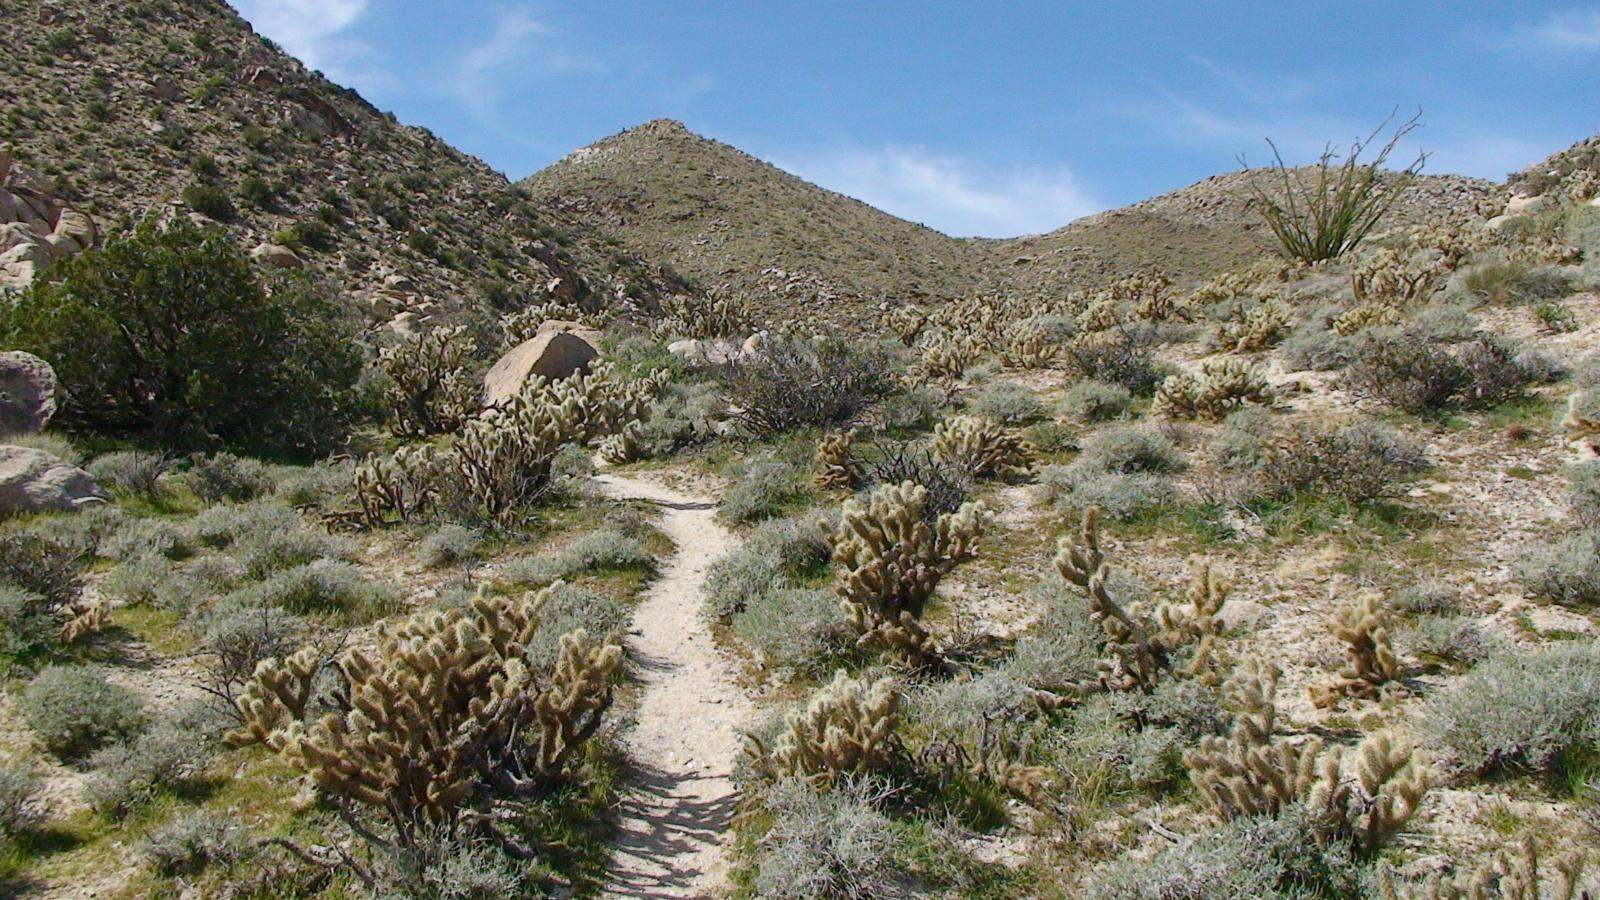 Photo of Anza Borrego - Mortero Palms To Goat Canyon Trestle